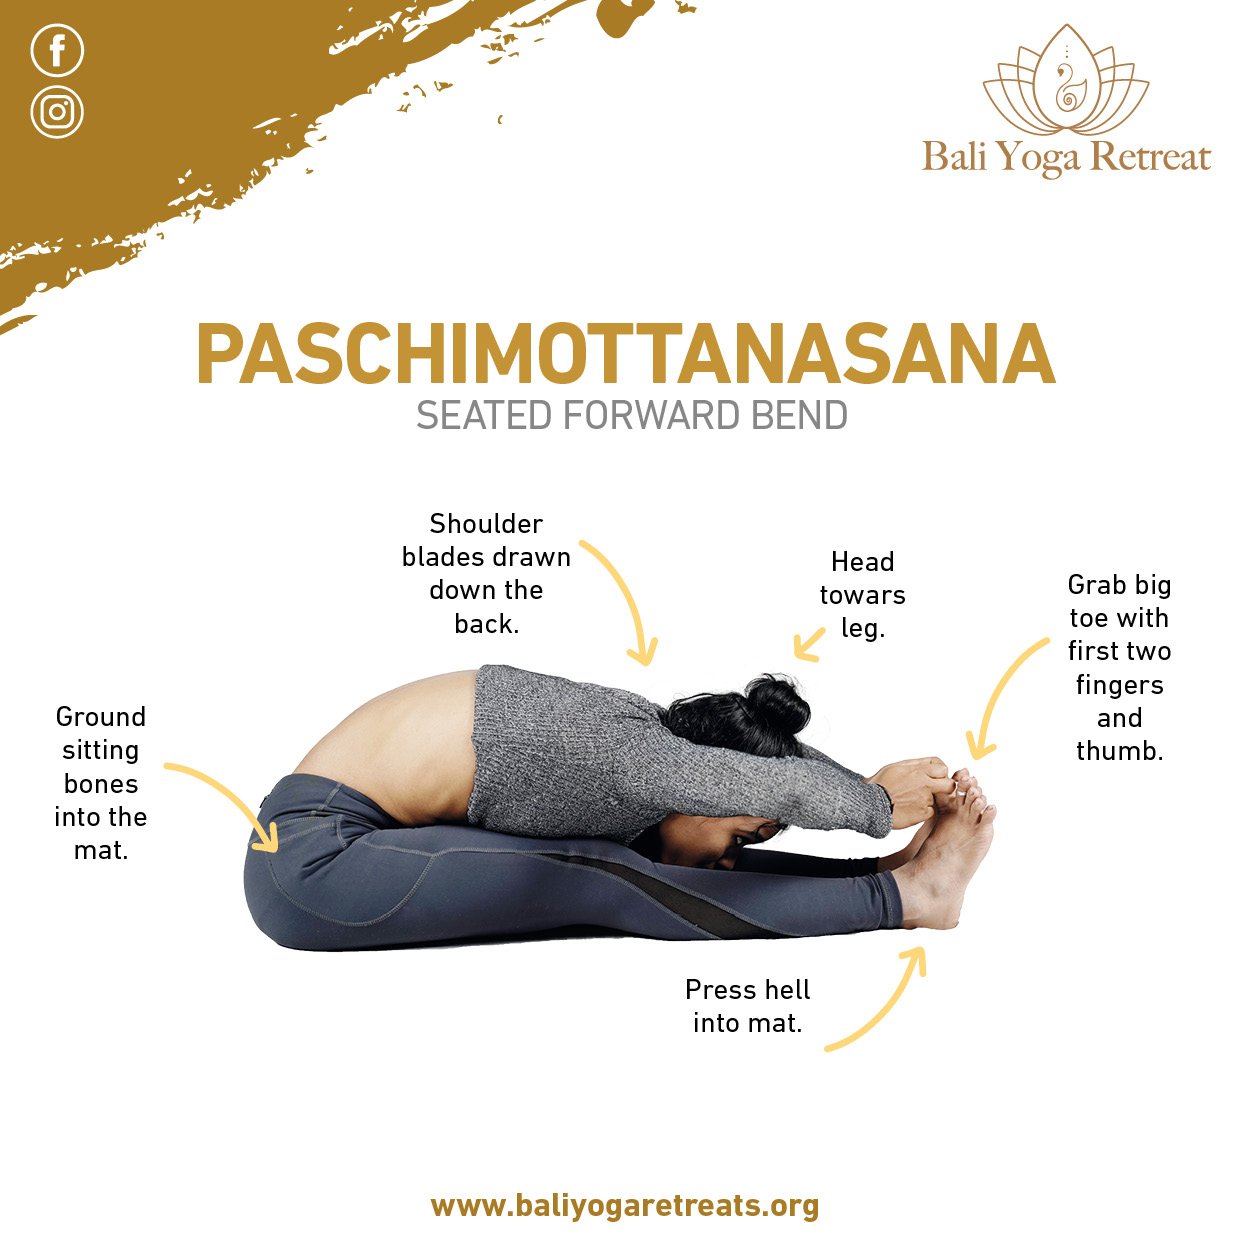 Seated forward bend pose for back pain